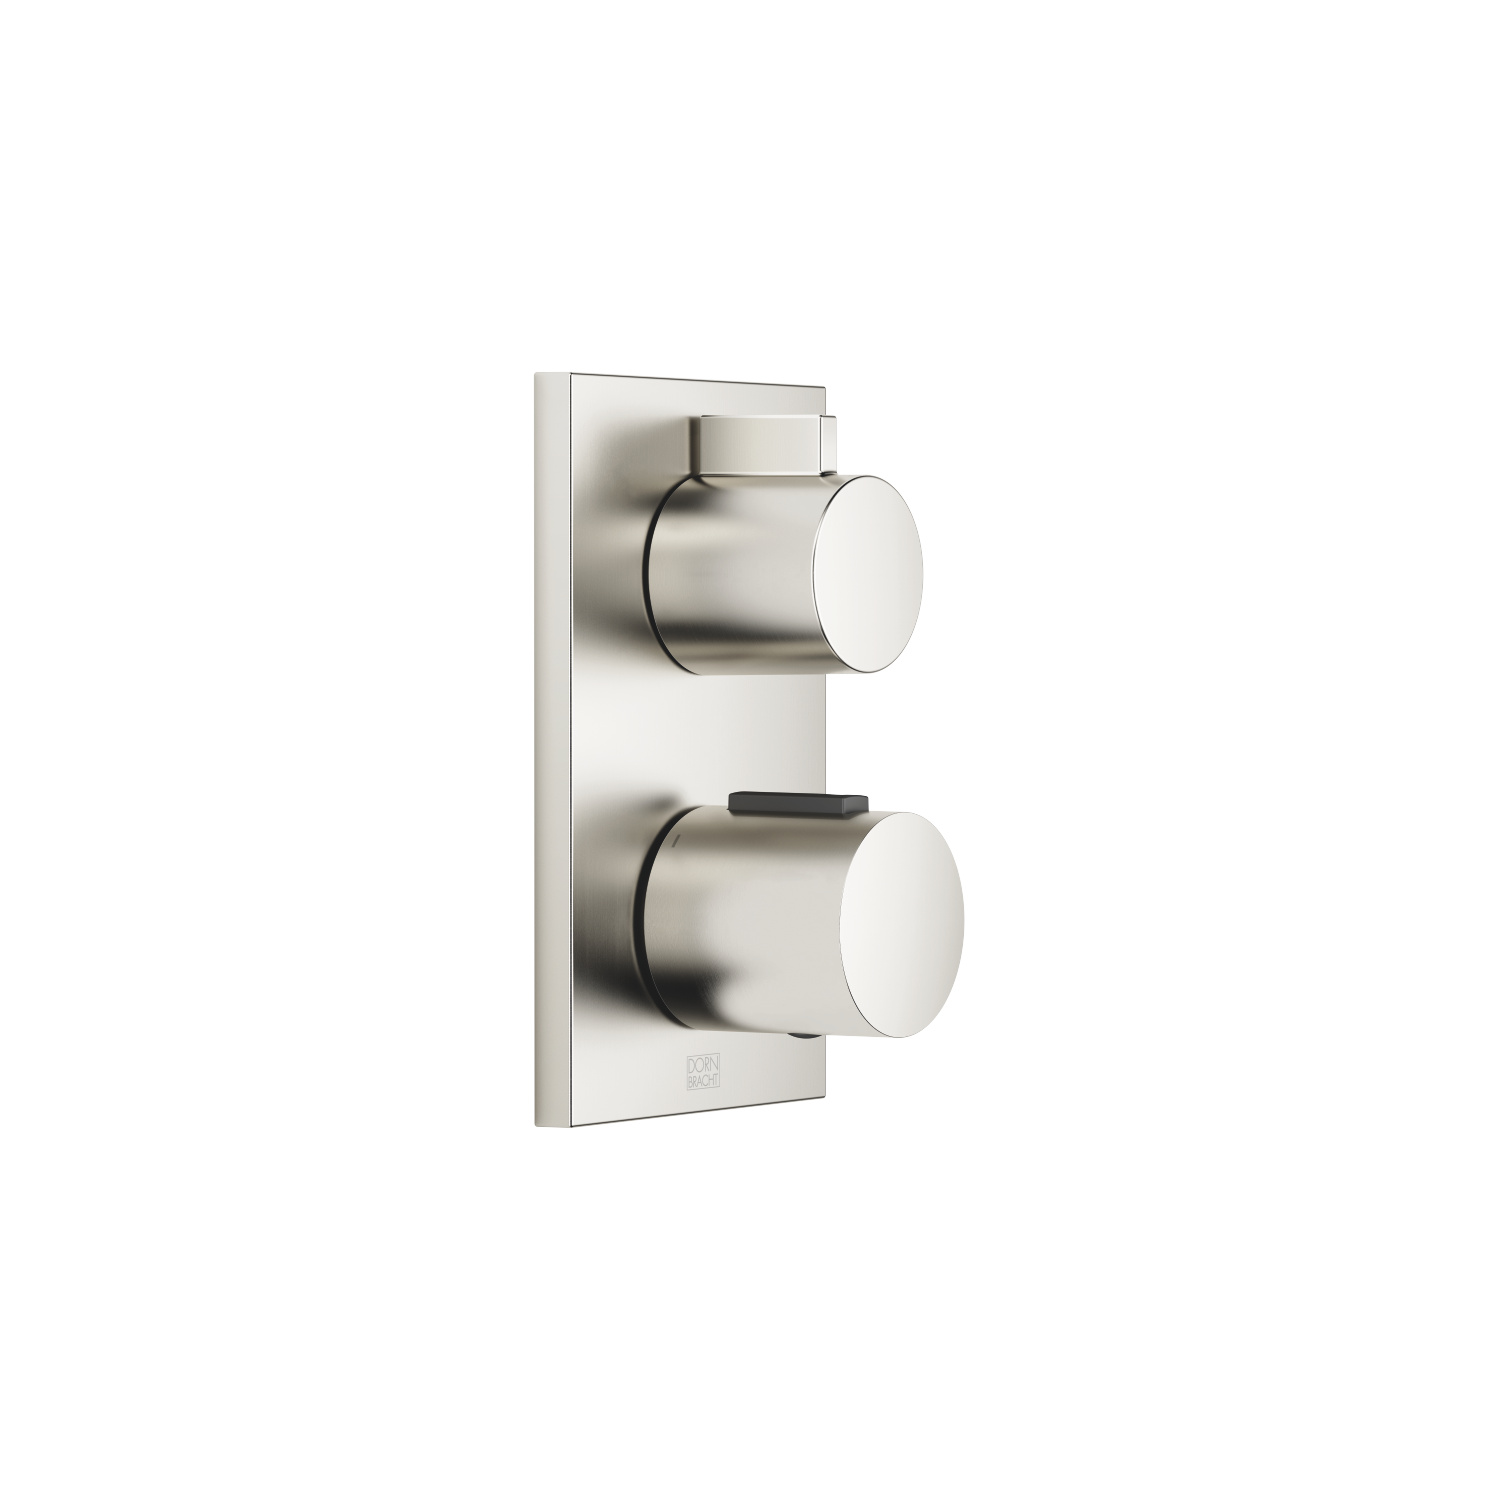 Concealed thermostat with one function volume control - platinum matt - 36 425 670-06